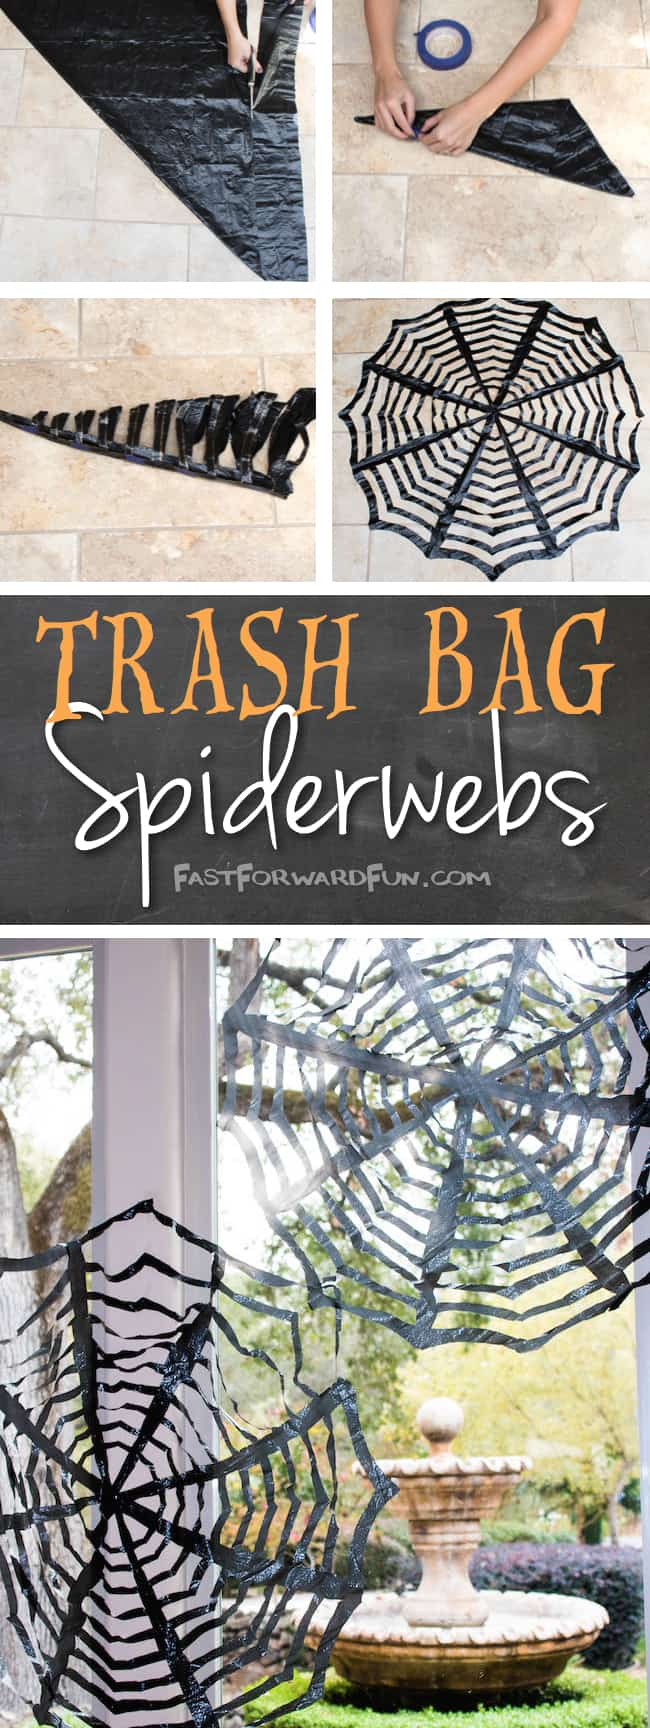 3 Trash Bag Spiderwebs